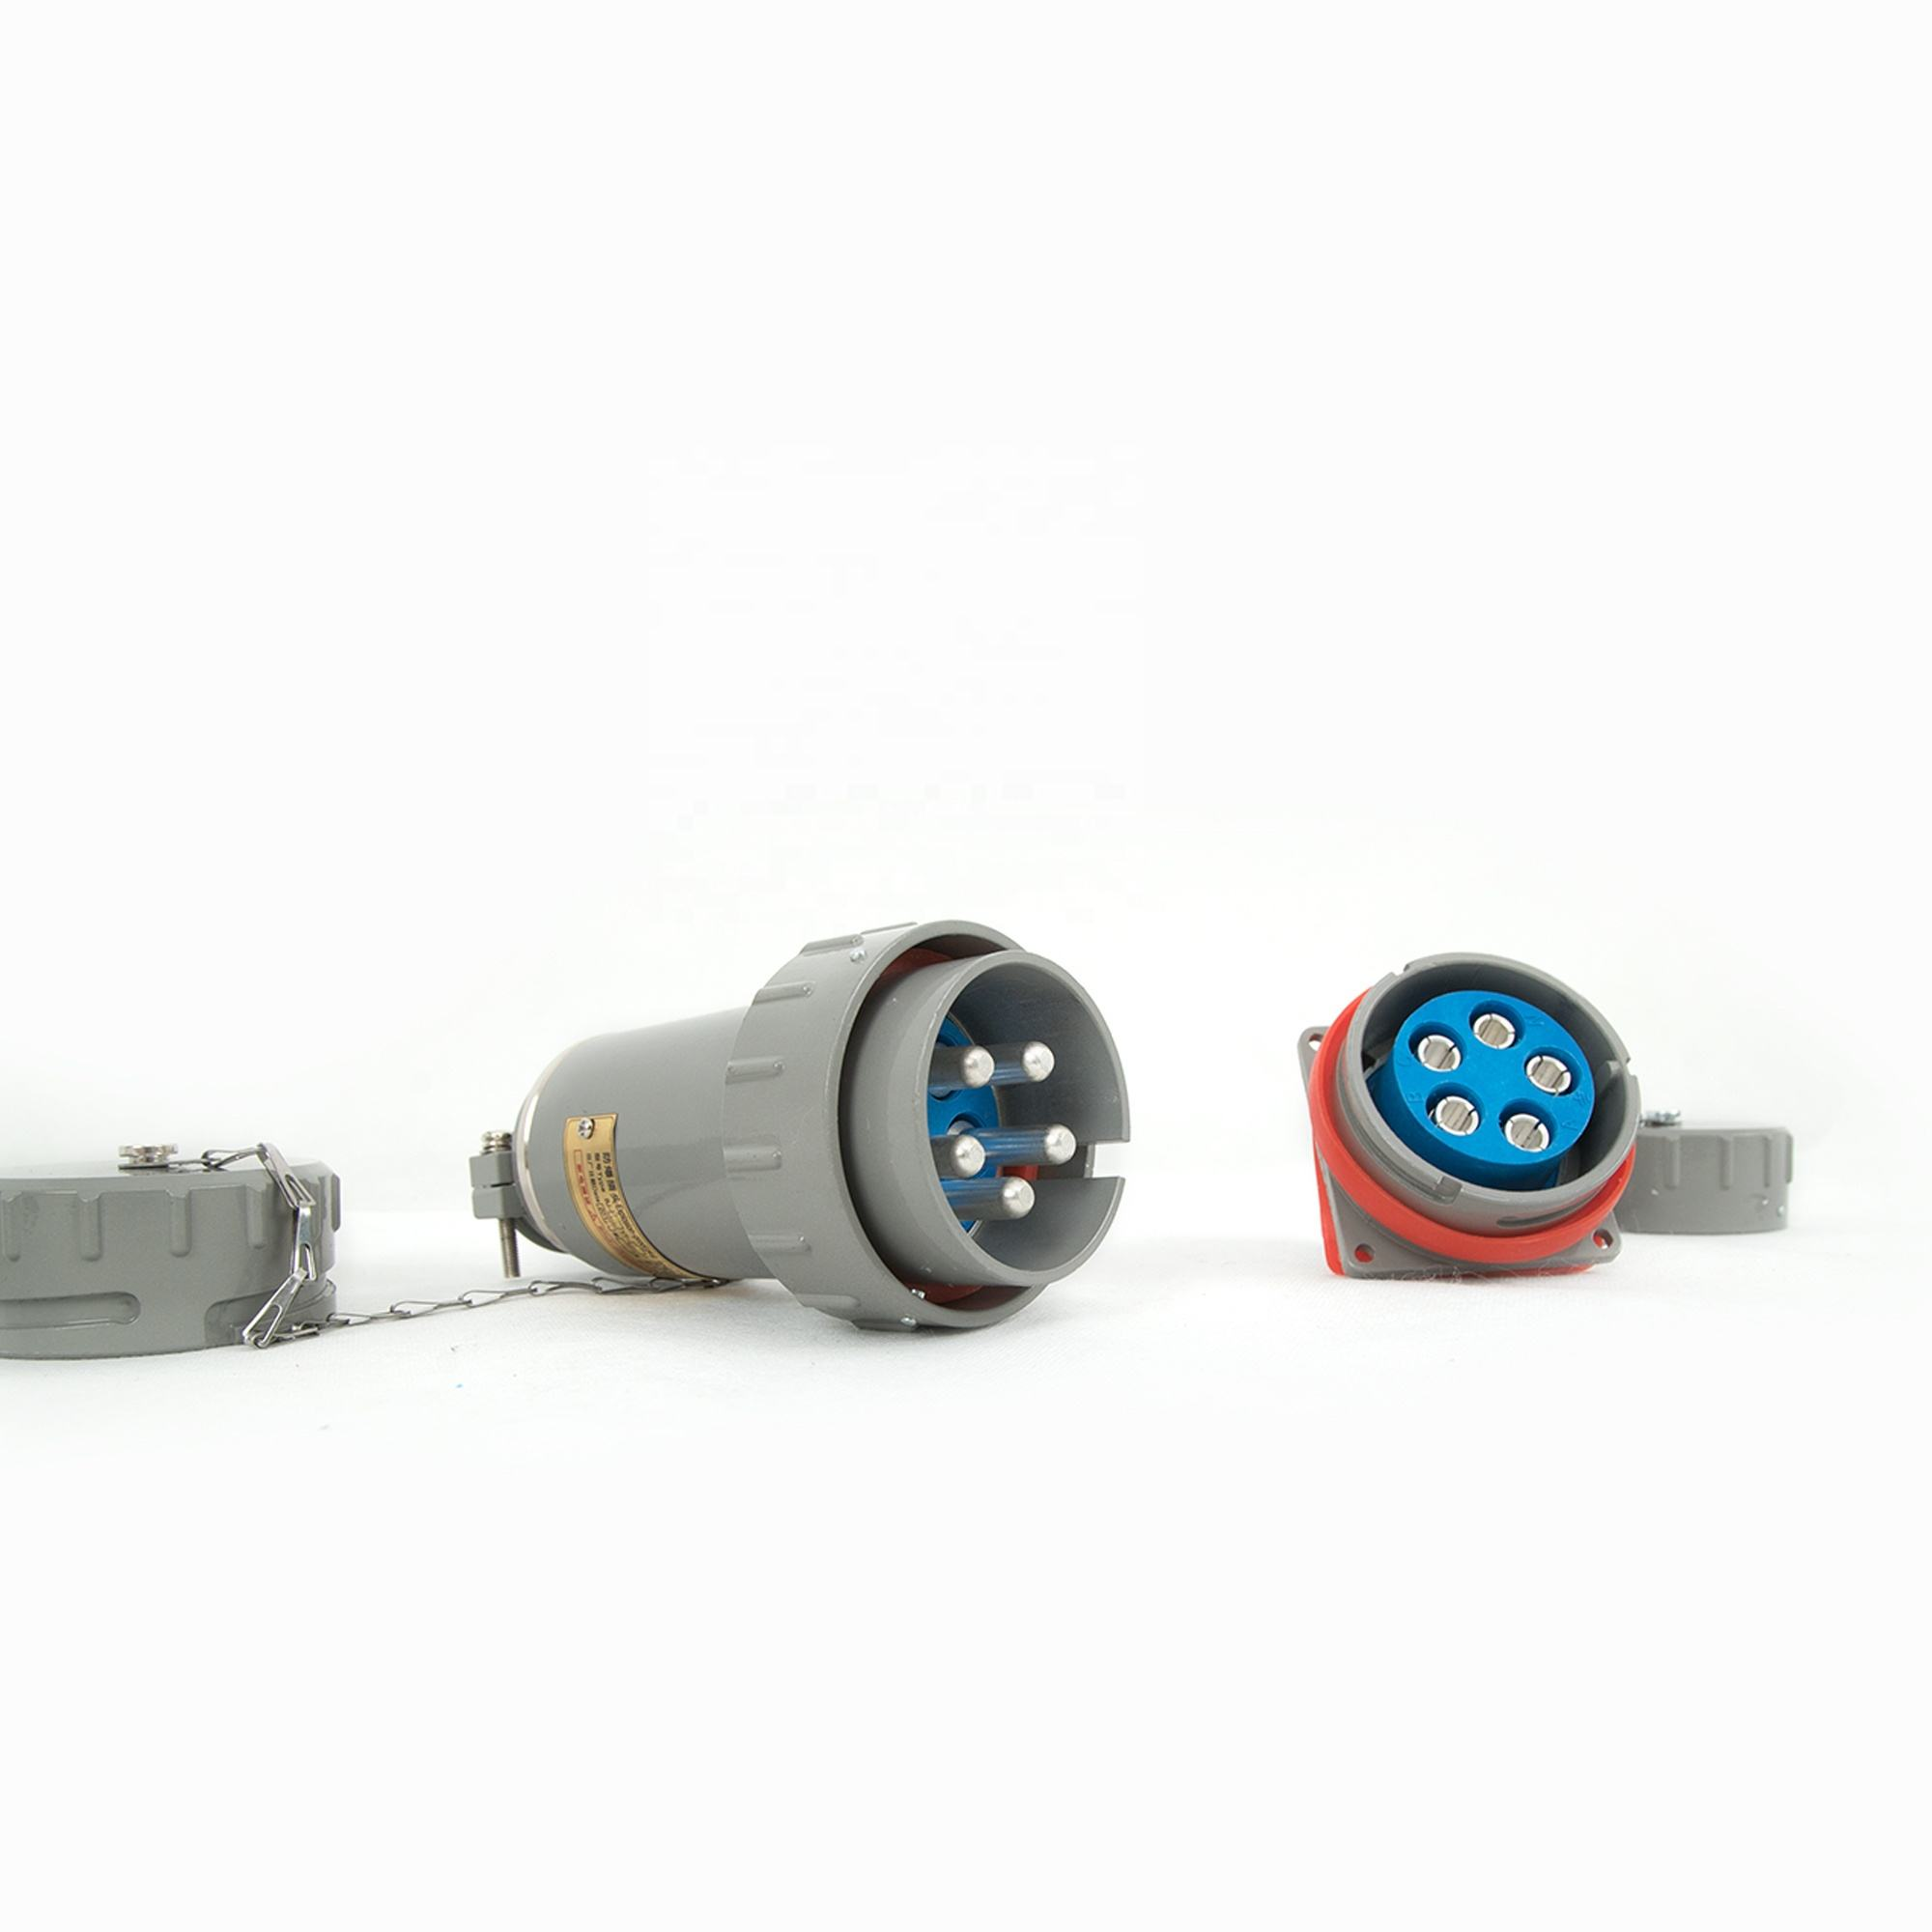 Ex 300A Yt GZ-5 Vonkvrij Drie-Fase Vijf-Polige Connector